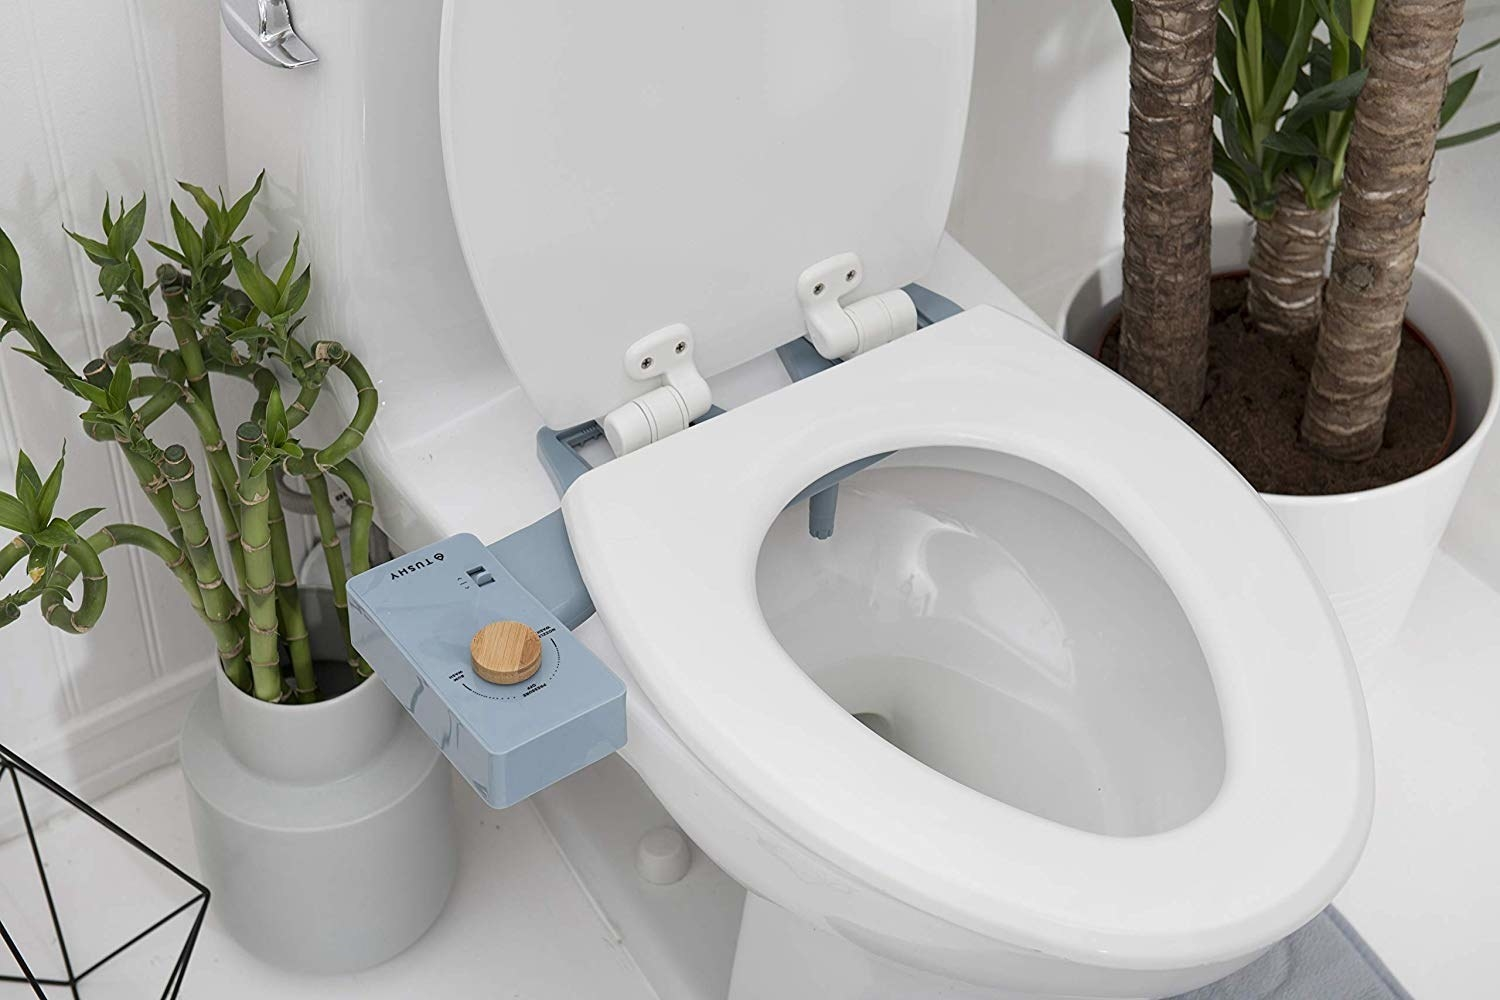 blue bidet attachment with bamboo dial on toilet